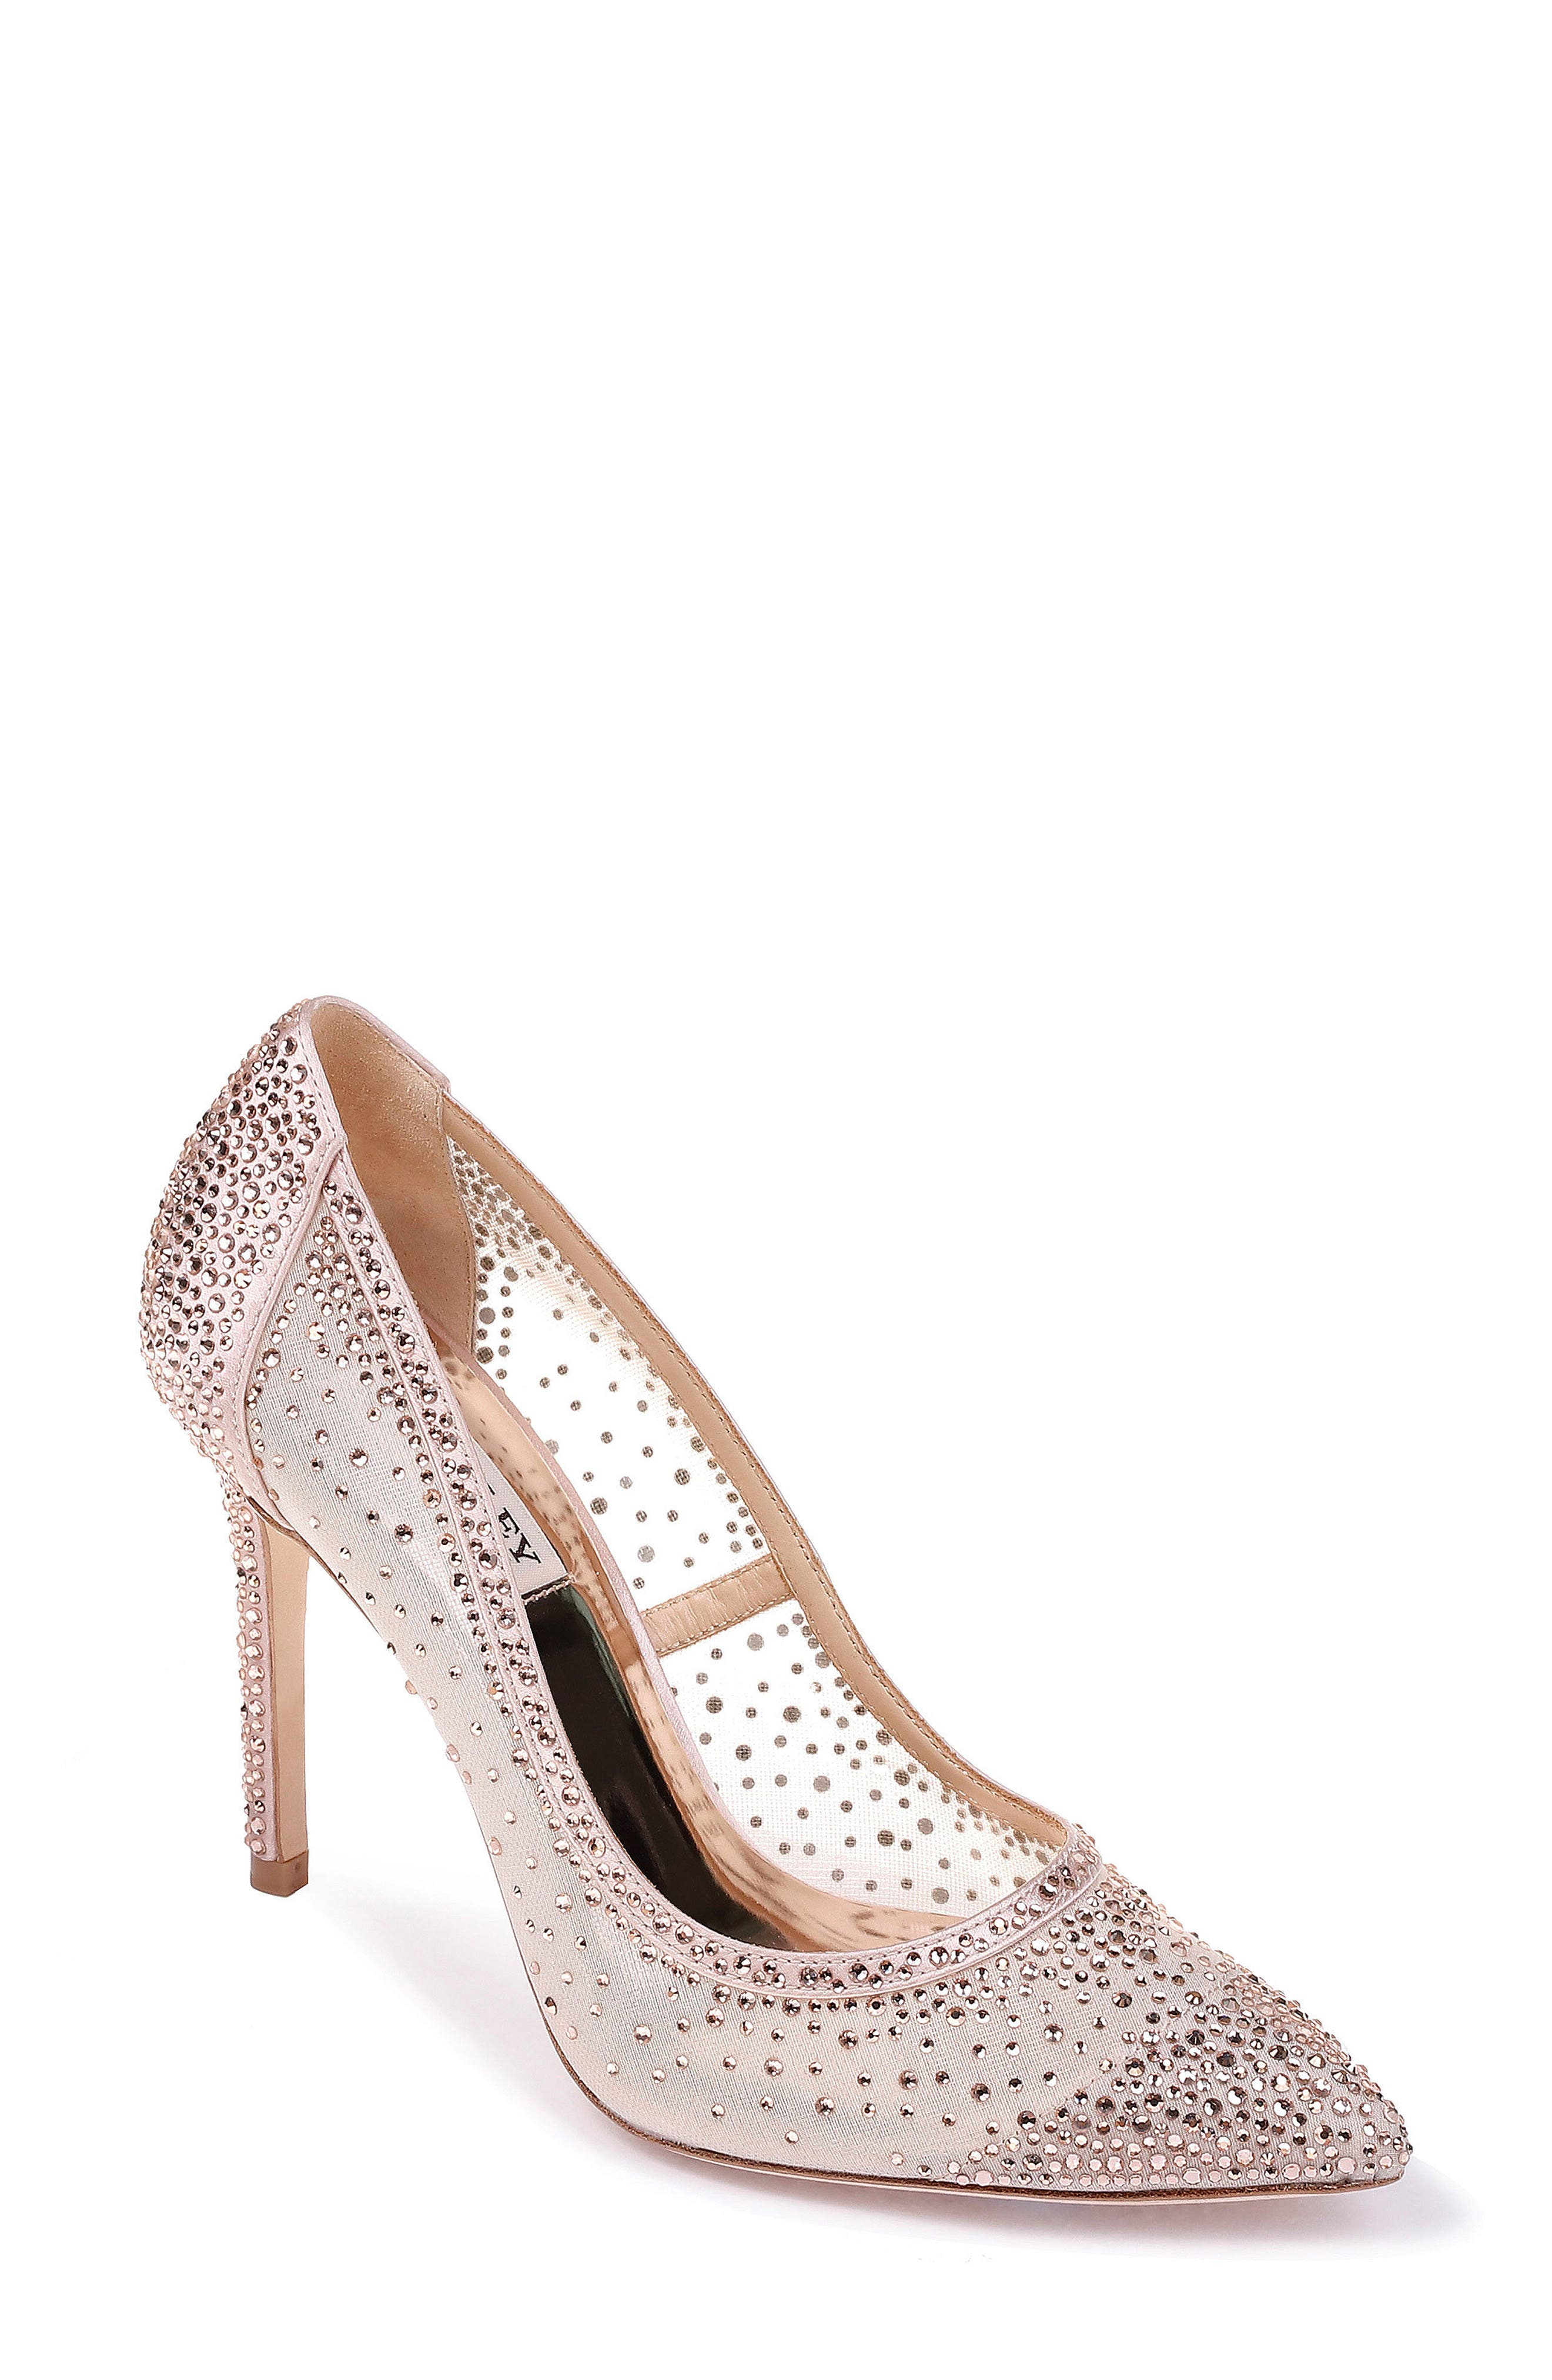 Weslee Pointy Toe Pump,                             Main thumbnail 1, color,                             BLUSH SATIN